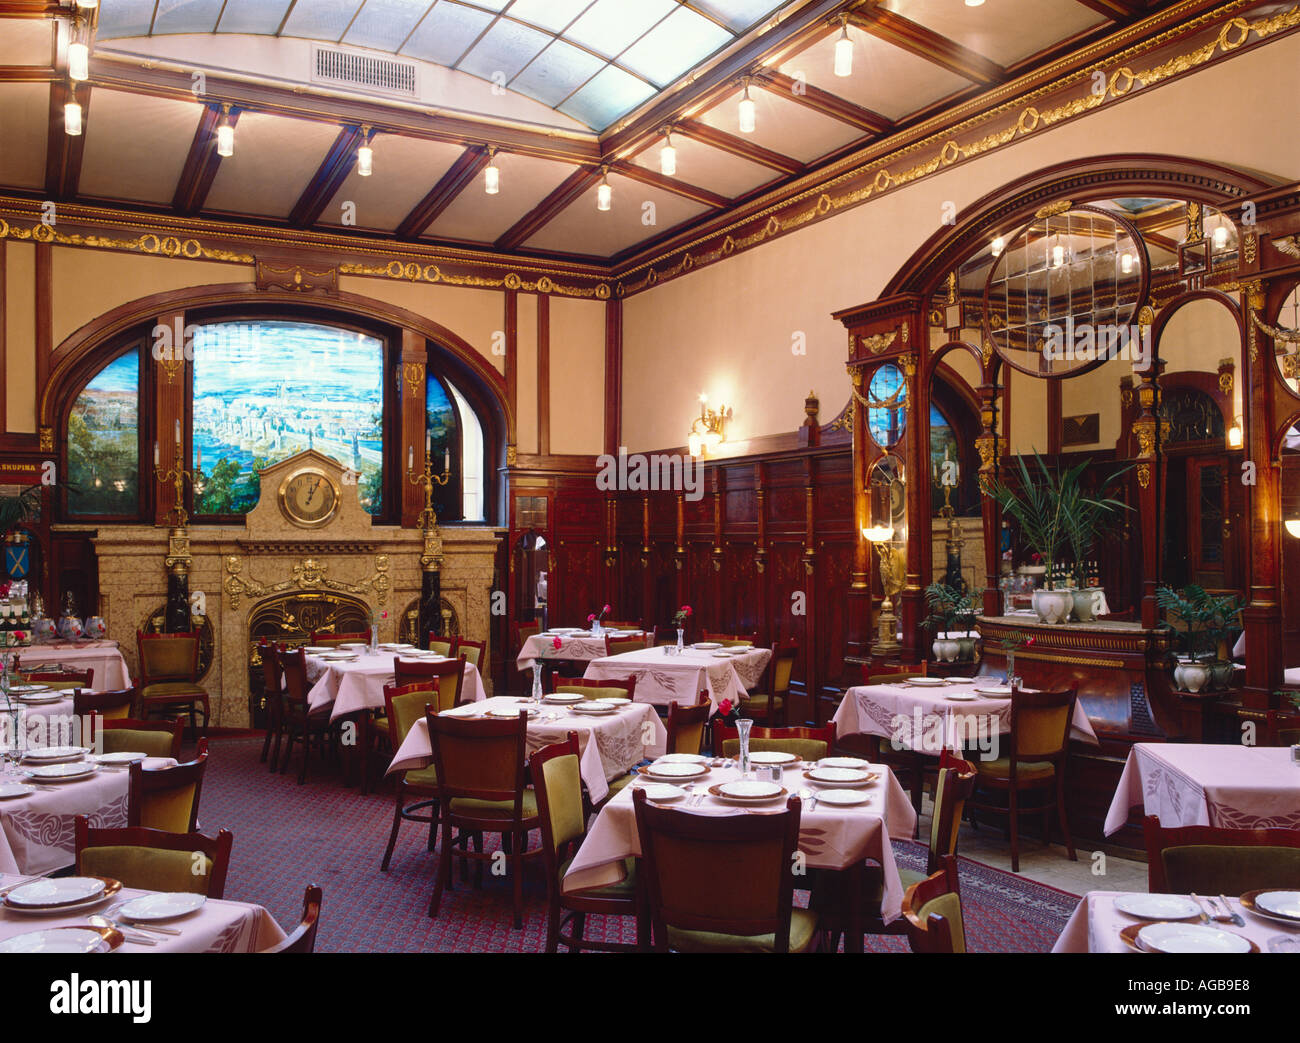 prague the grand hotel europa 1903 6 with its spectacular art nouveau stock photo 1096167 alamy. Black Bedroom Furniture Sets. Home Design Ideas